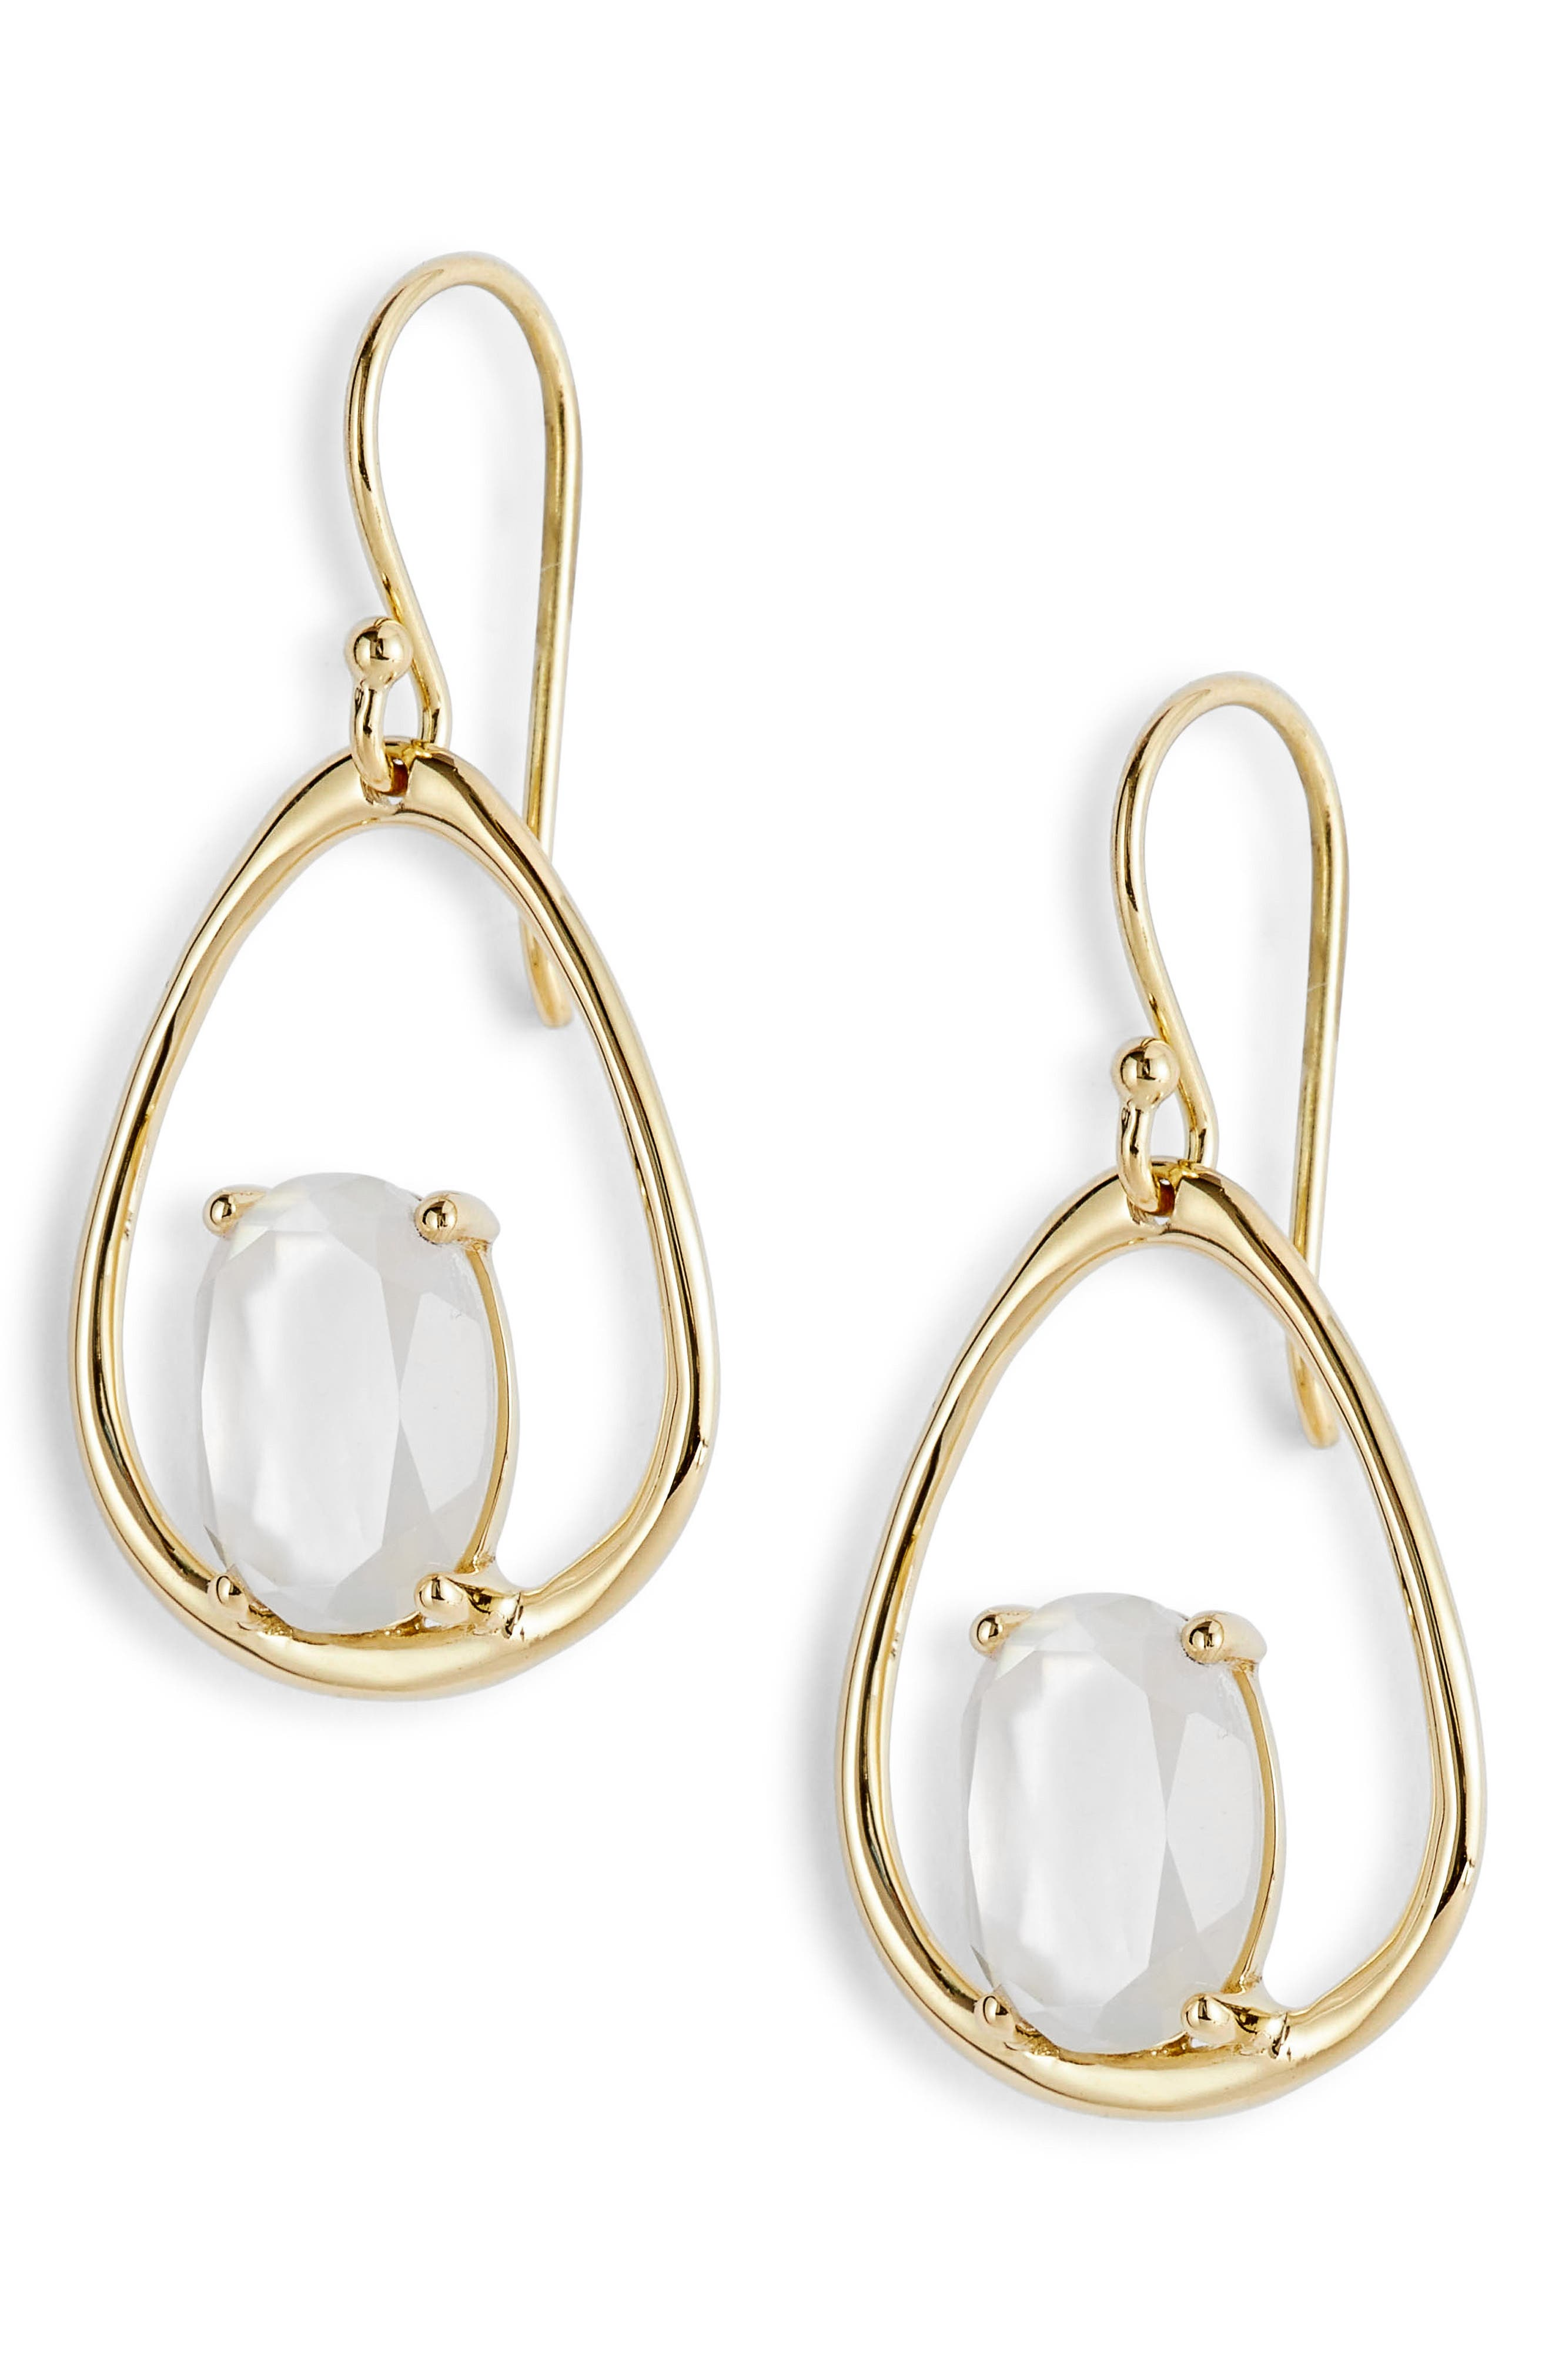 Rock Candy 18K Gold Small Drop Earrings,                             Main thumbnail 1, color,                             GOLD/ MOTHER OF PEARL